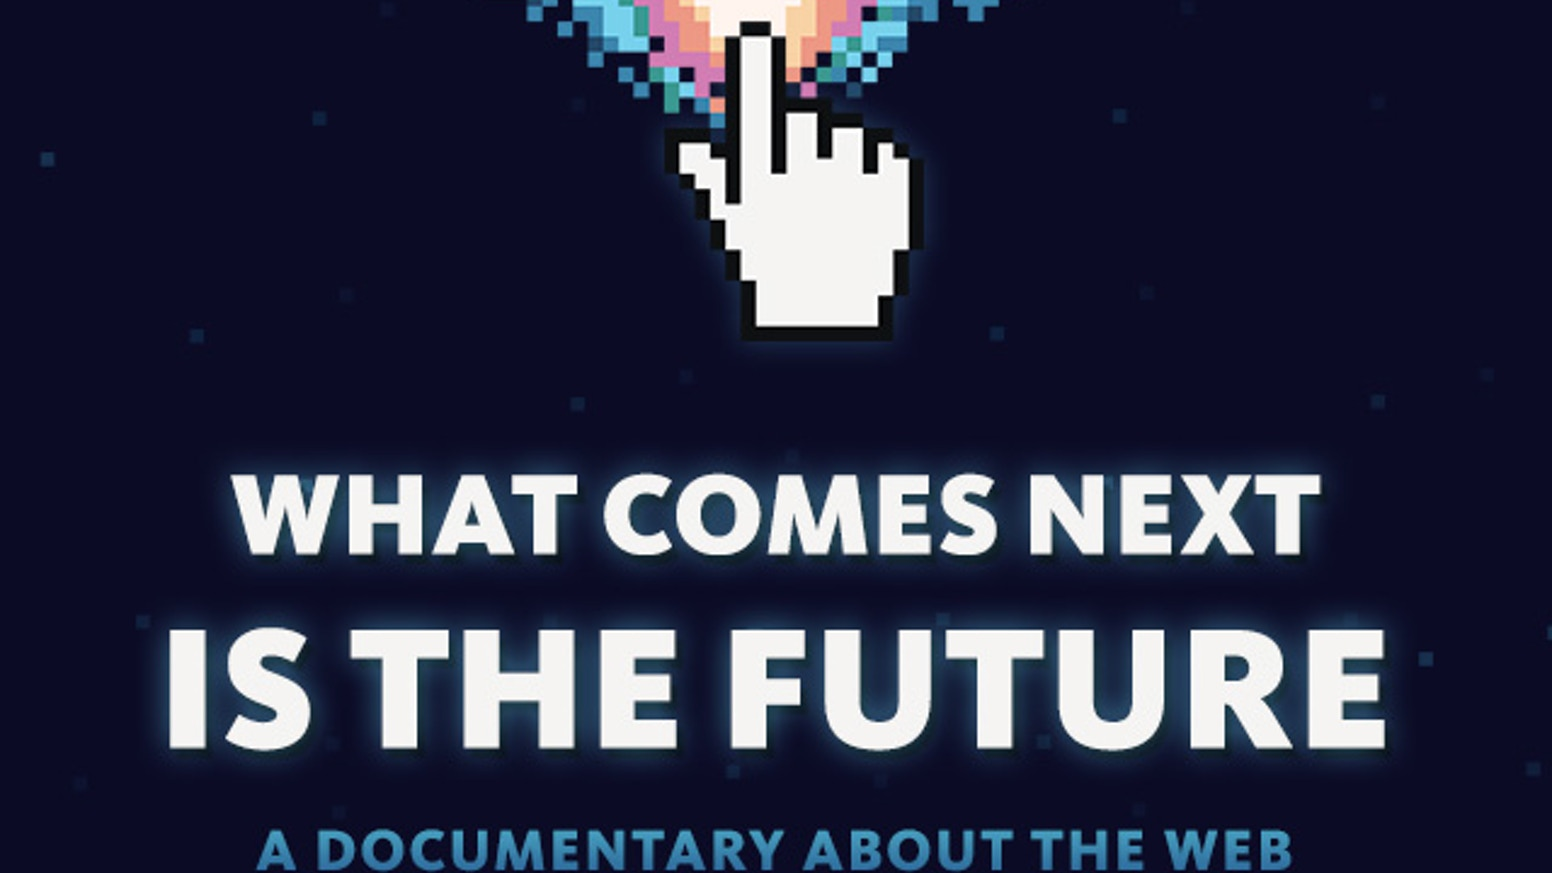 What Comes Next Is the Future is the definitive documentary about the web, as told by the people who build it each day.